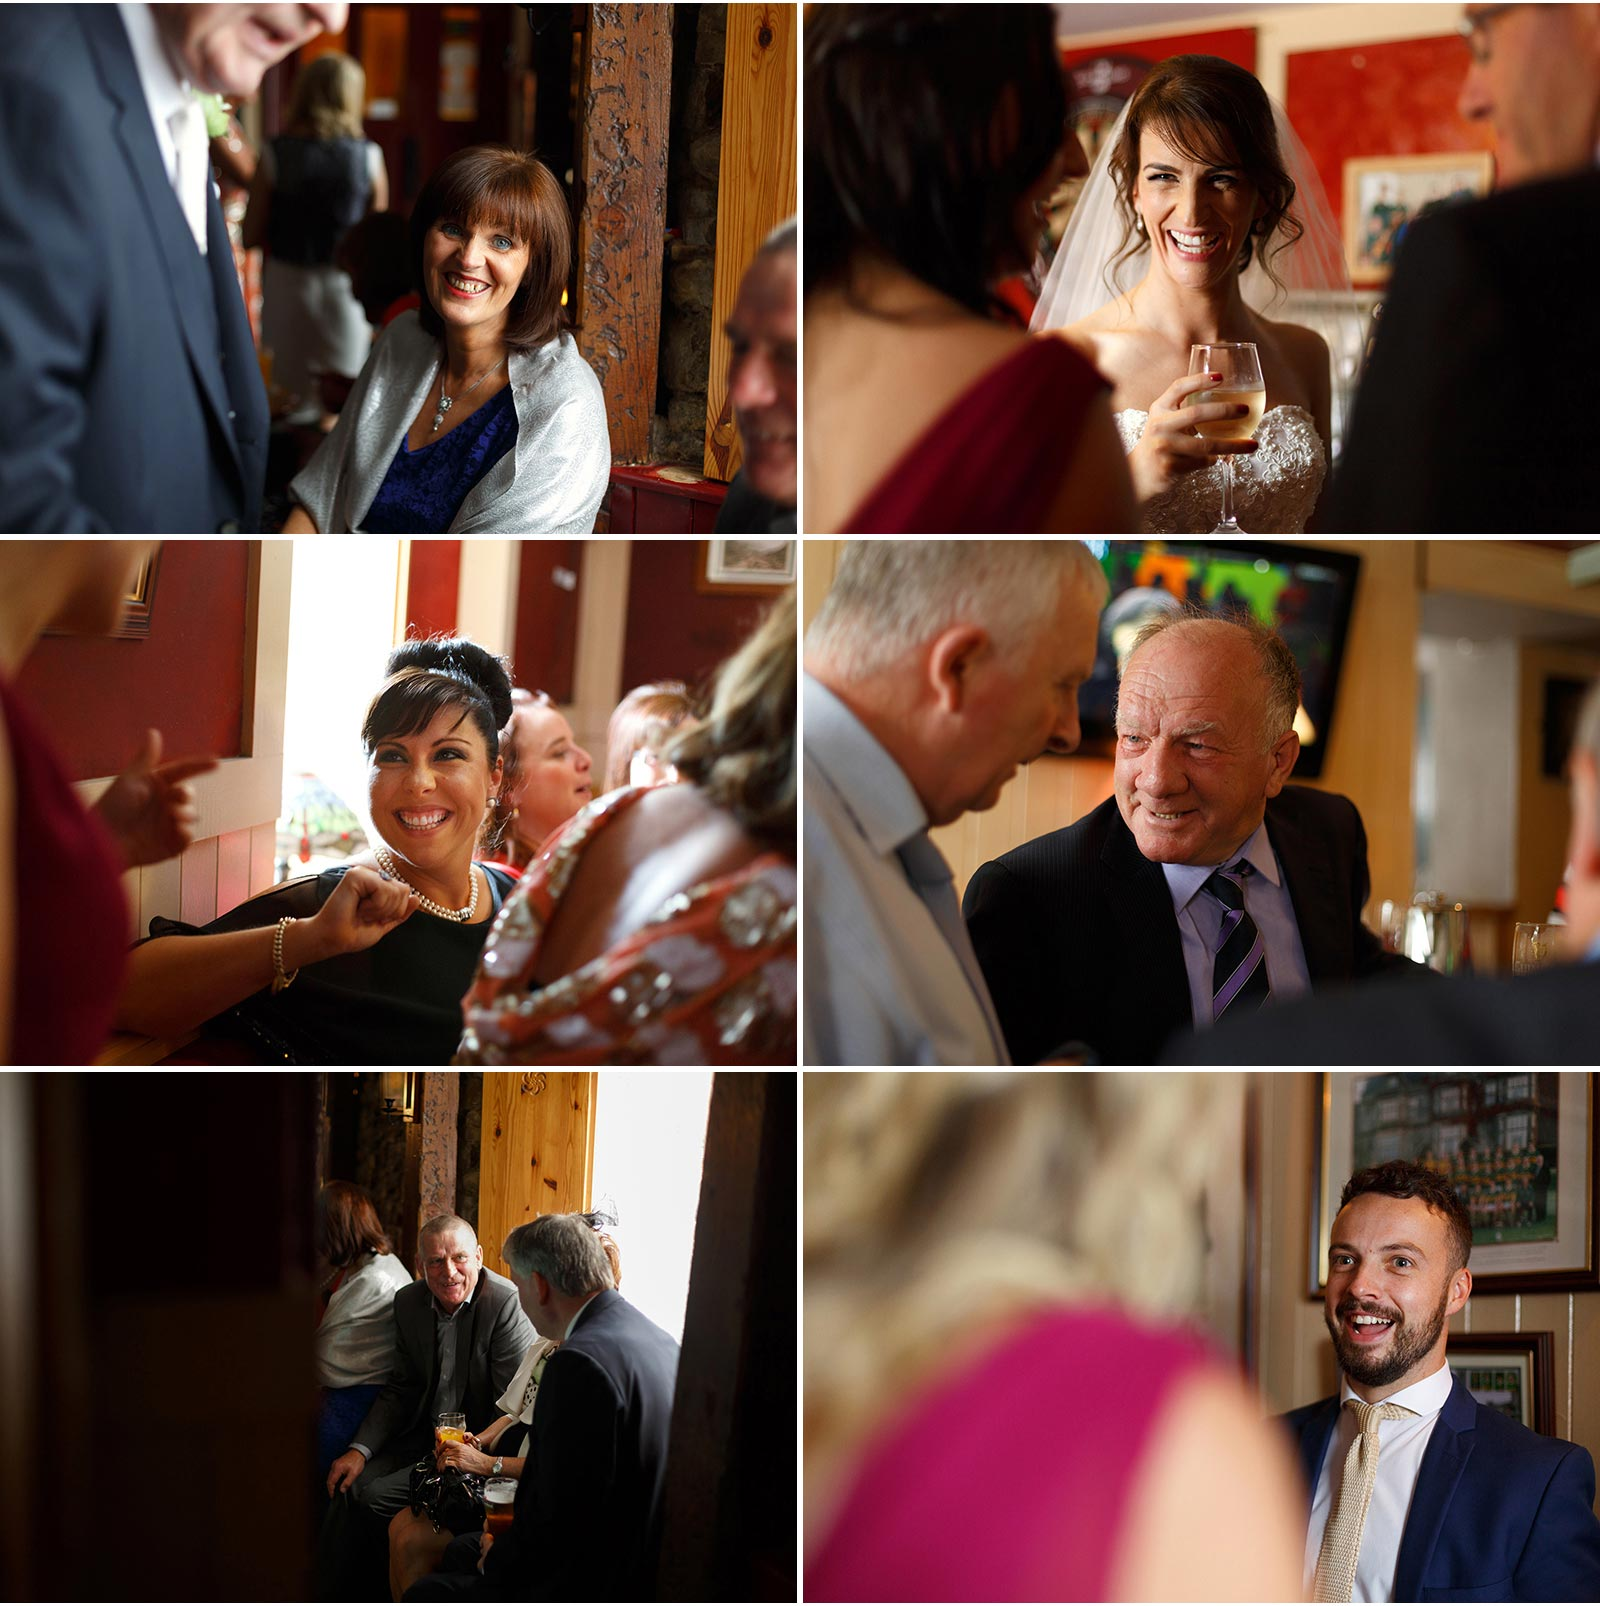 candid shots of wedding guests in a lovely traditional irish pub